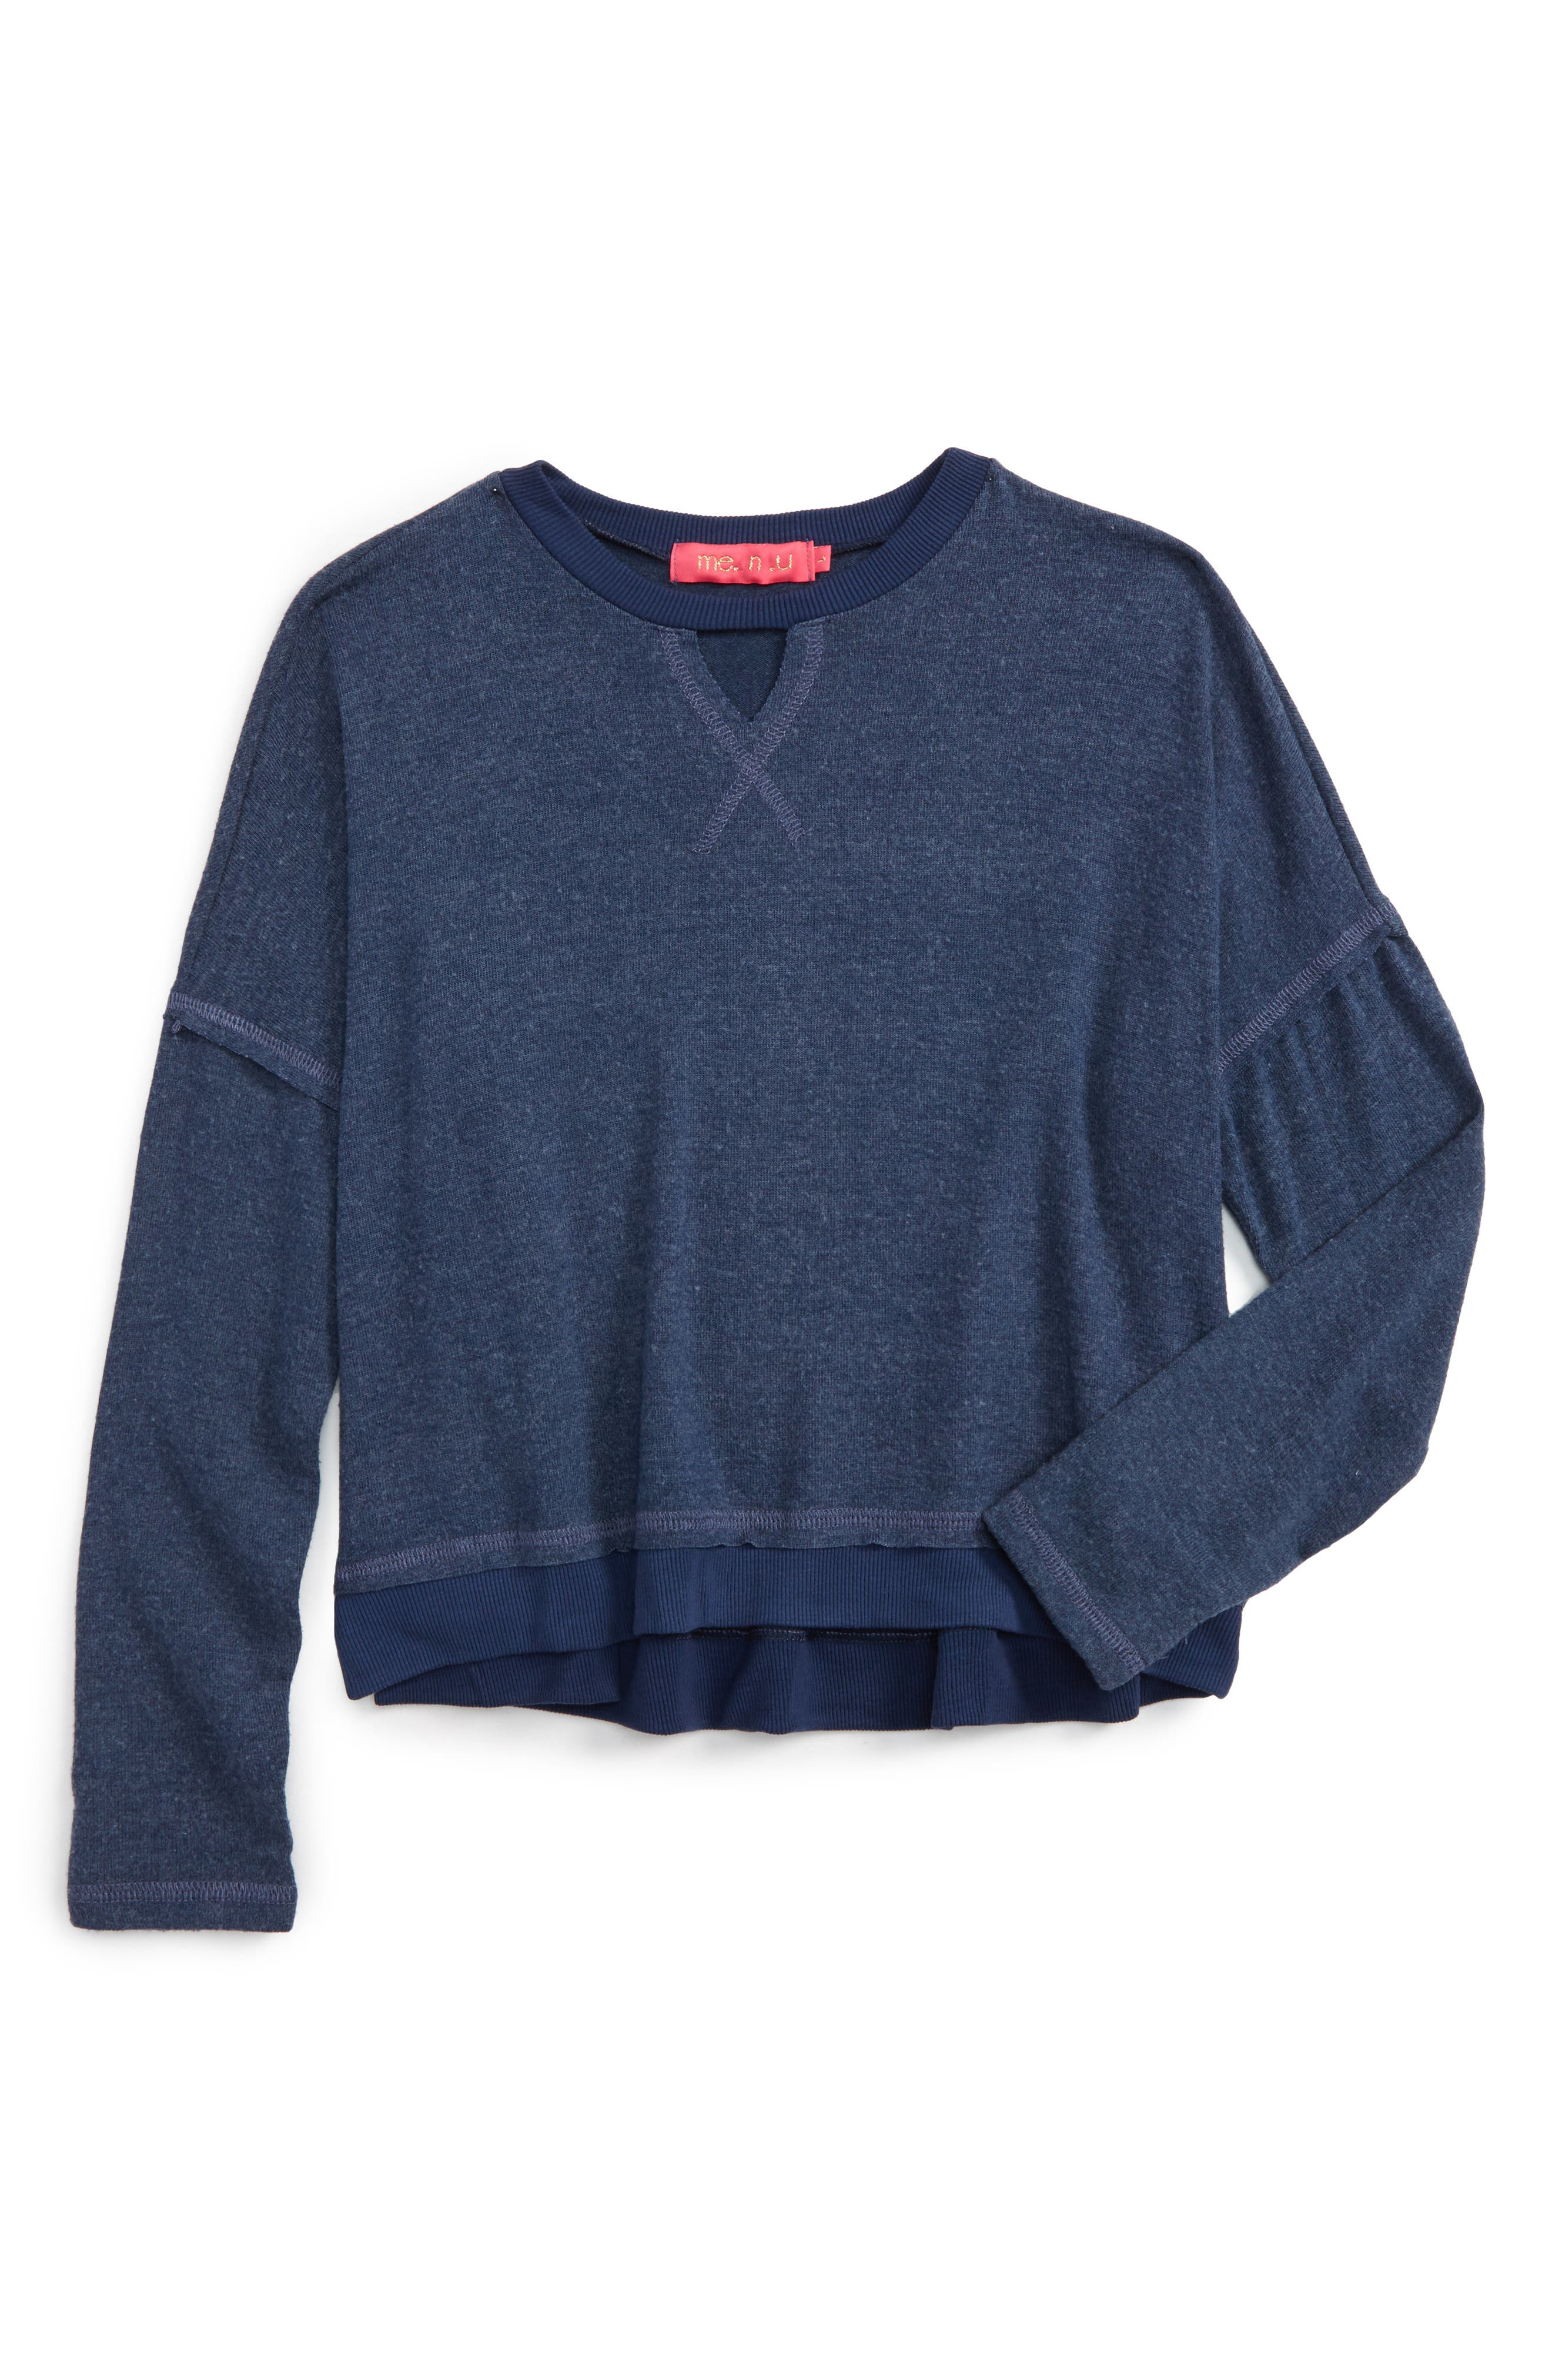 Main Image - me.n.u Gigi Cutout Sweatshirt (Big Girls)